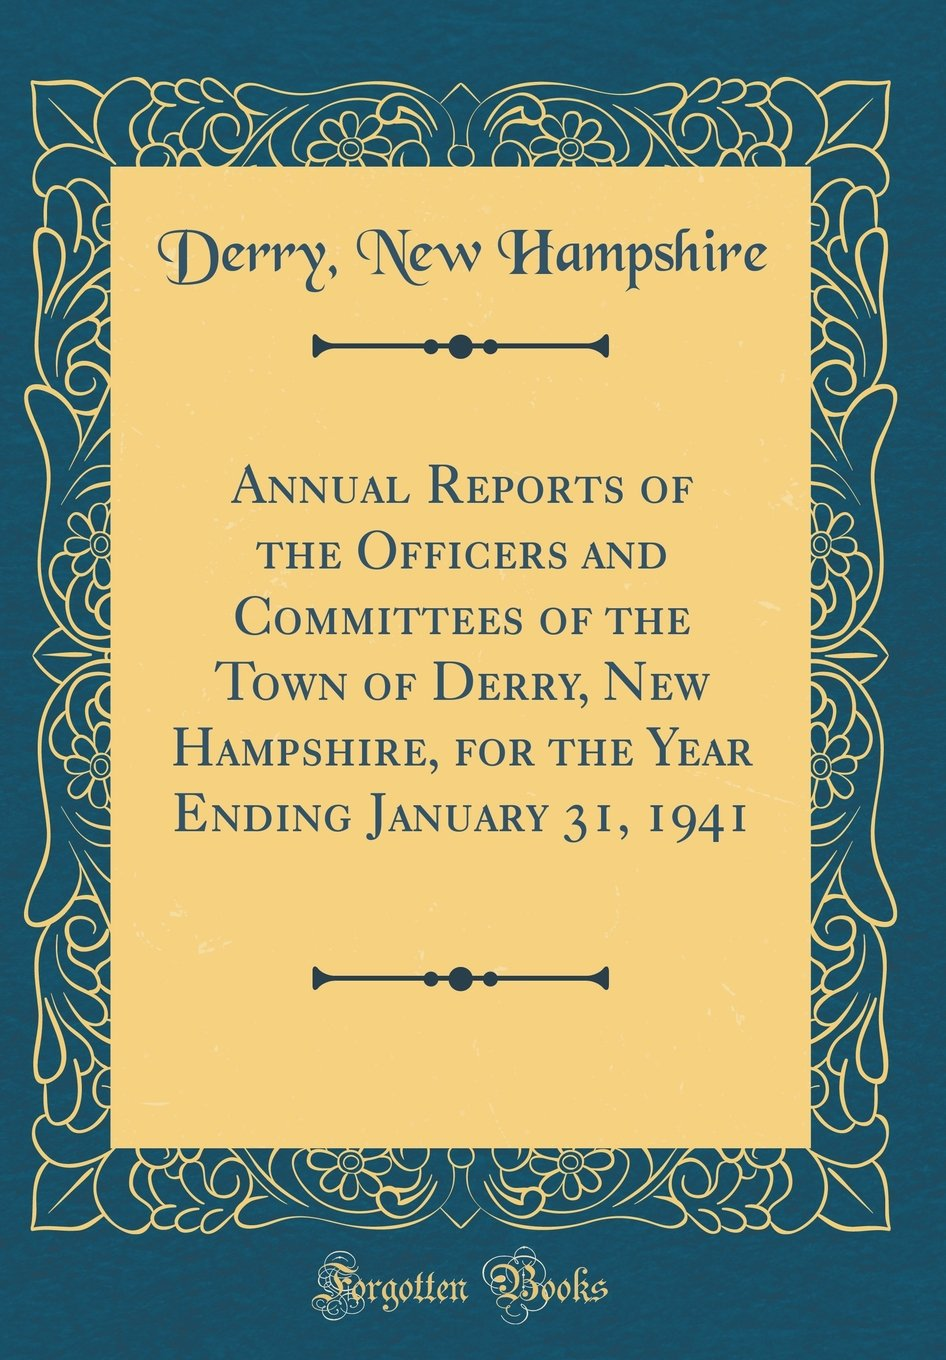 Download Annual Reports of the Officers and Committees of the Town of Derry, New Hampshire, for the Year Ending January 31, 1941 (Classic Reprint) pdf